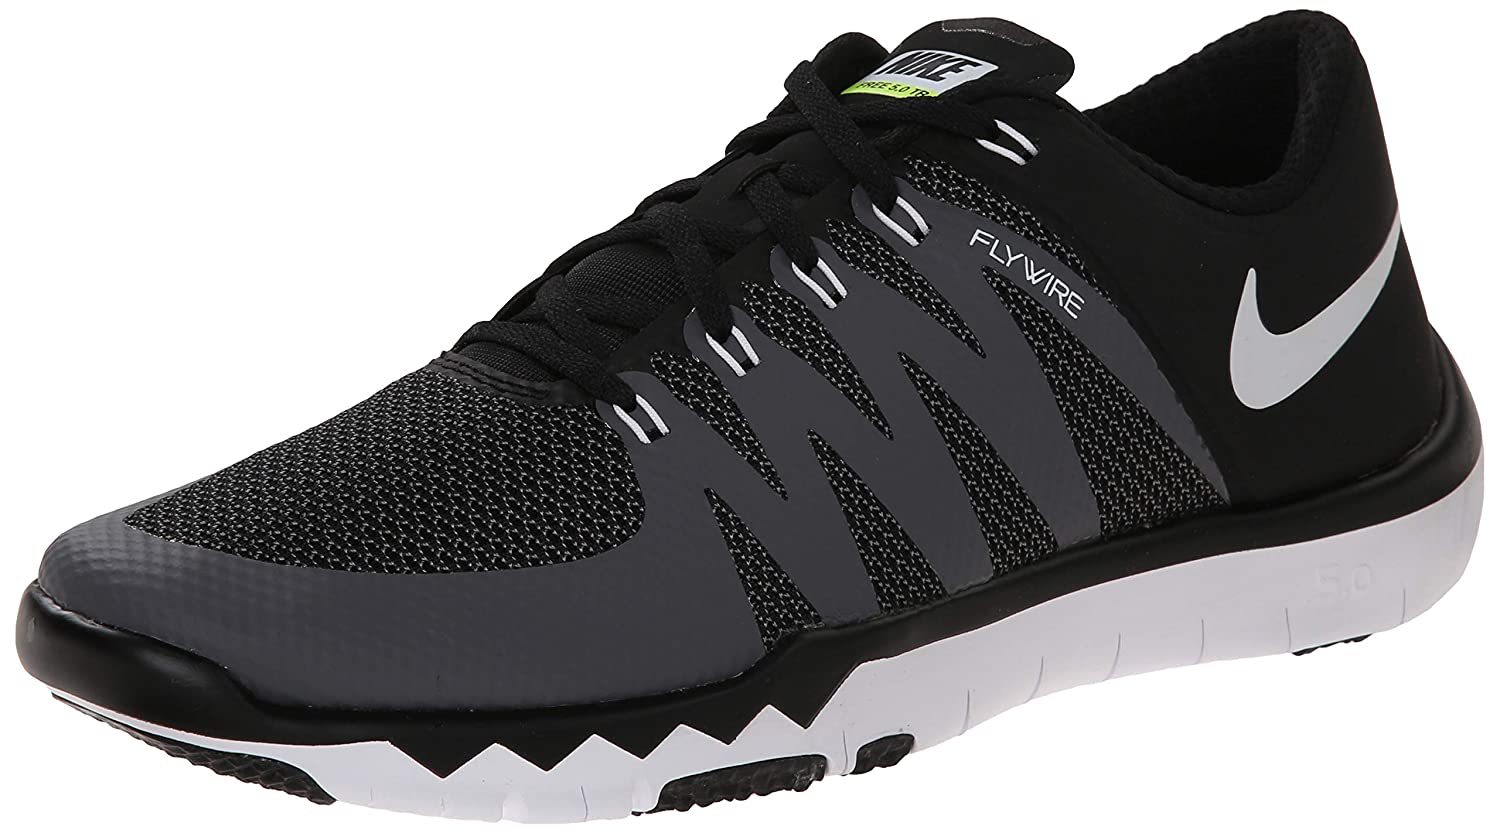 Patológico farmacéutico mal humor  Buy Nike Men's Free Trainer 5. 0 V6 Training Shoe Black/Dark Grey ...